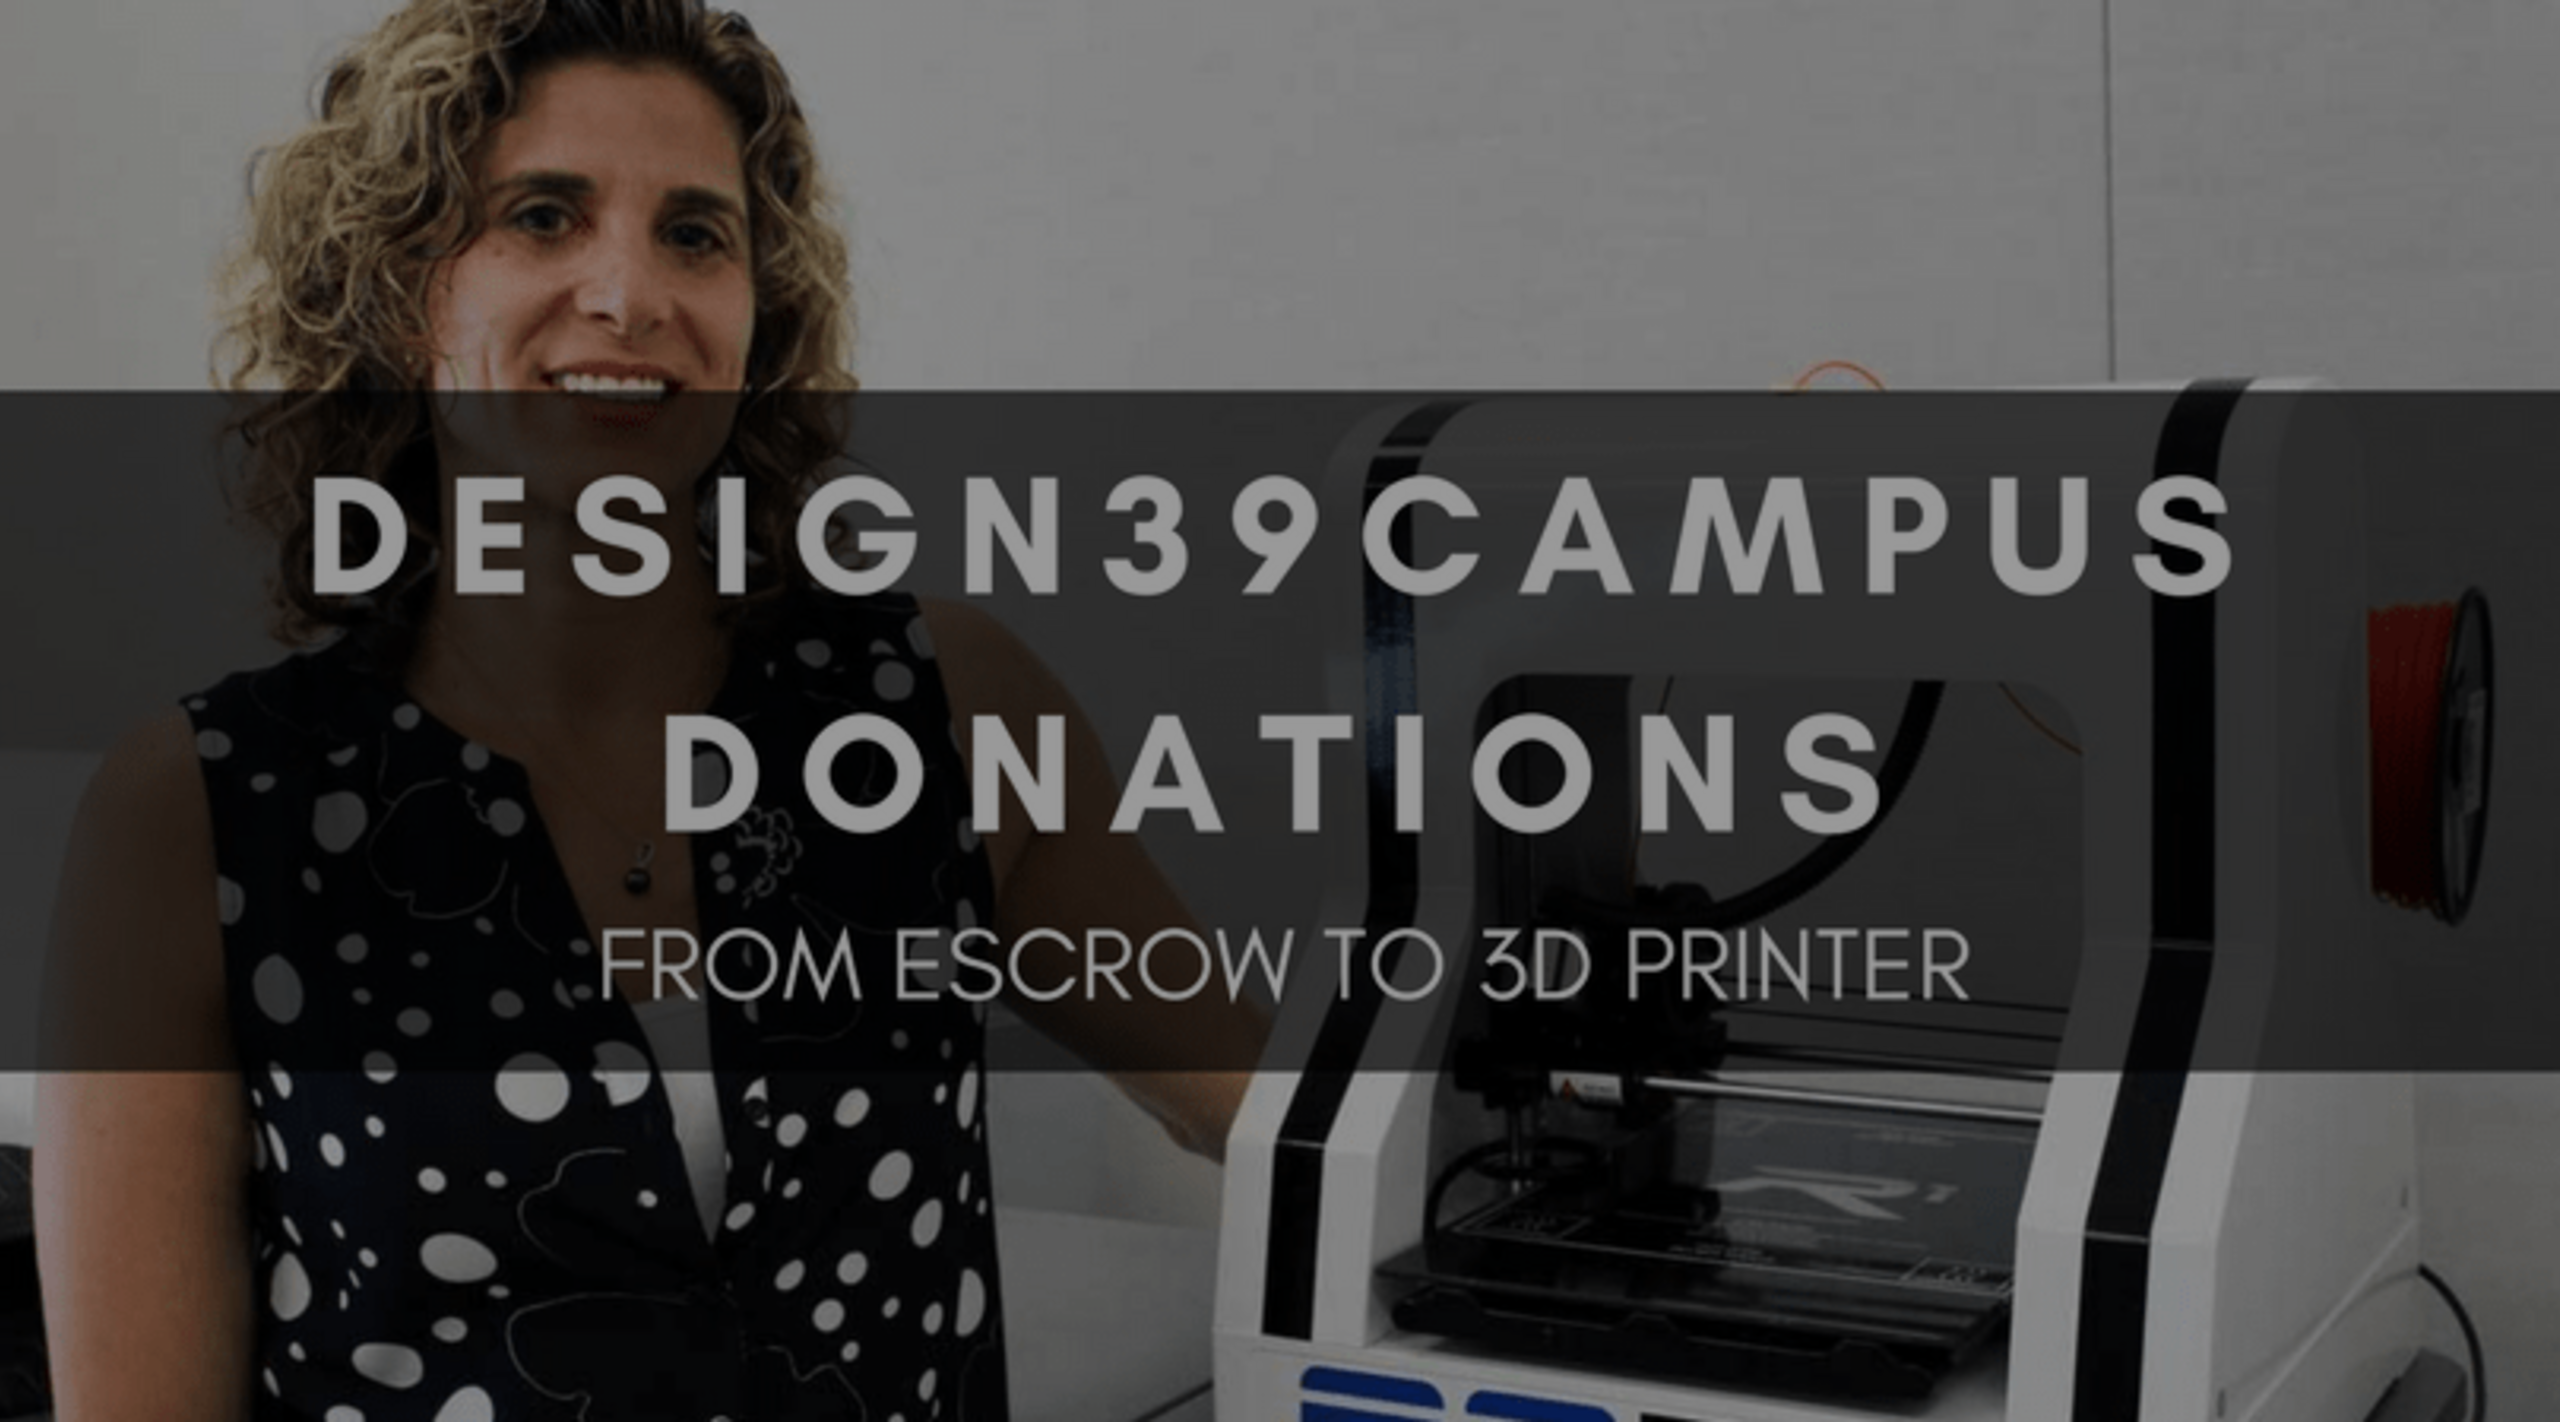 DESIGN39CAMPUS DONATIONS: FROM ESCROW TO 3D PRINTER